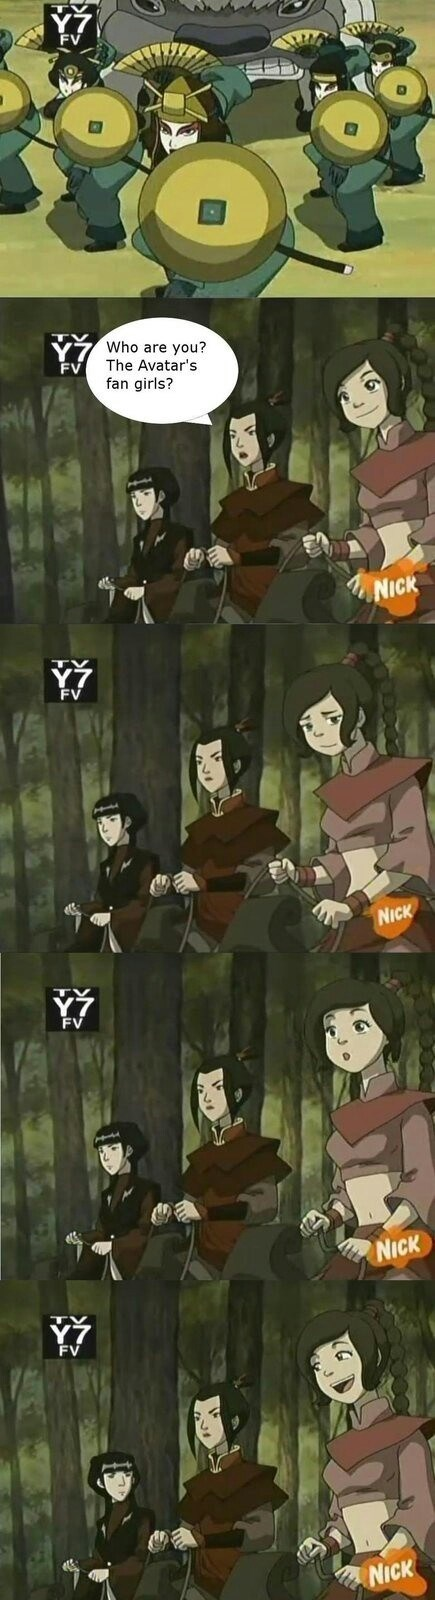 Cartoon - Who are you? The Avatar's FV fan girls? 44 NICK FV NICK FV NICK FV NICK